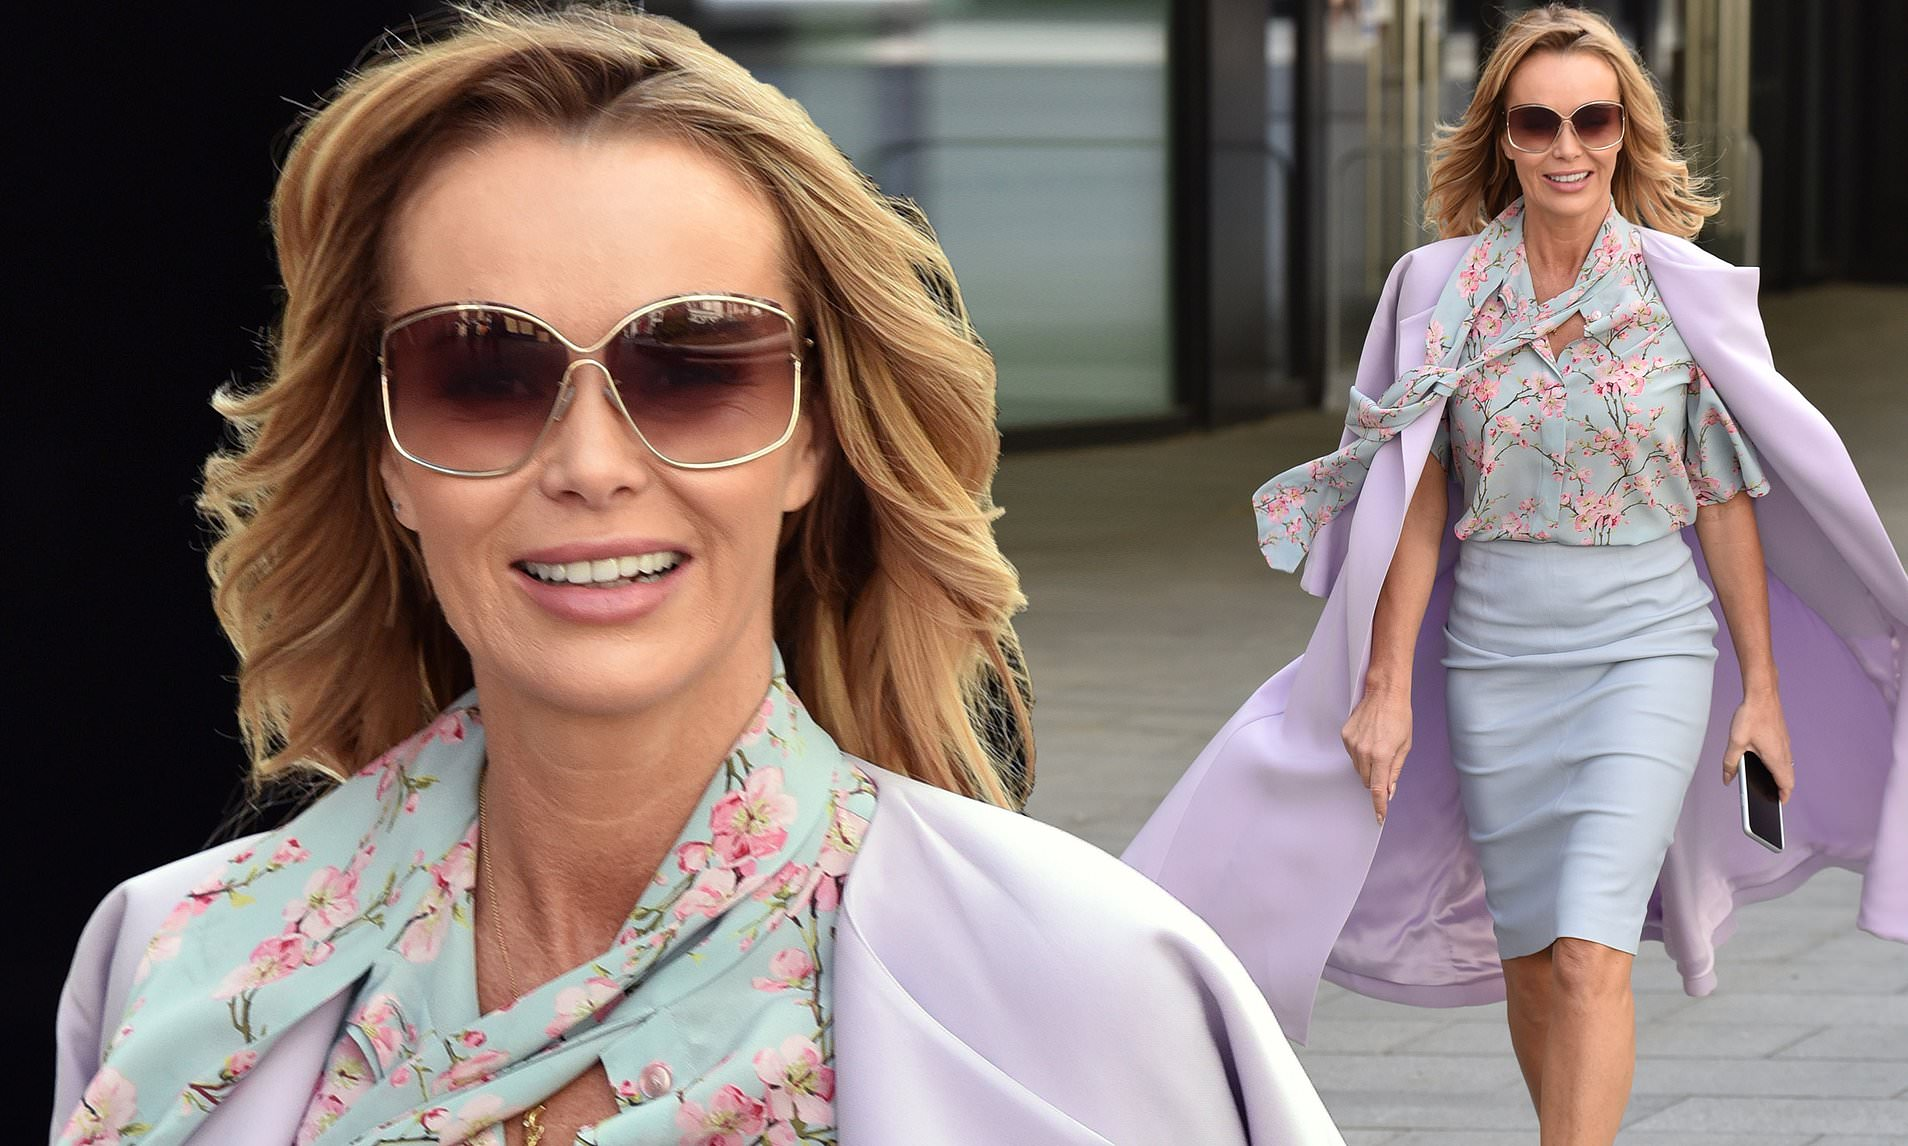 Amanda Holden in the Prettiest Pastel Outfit